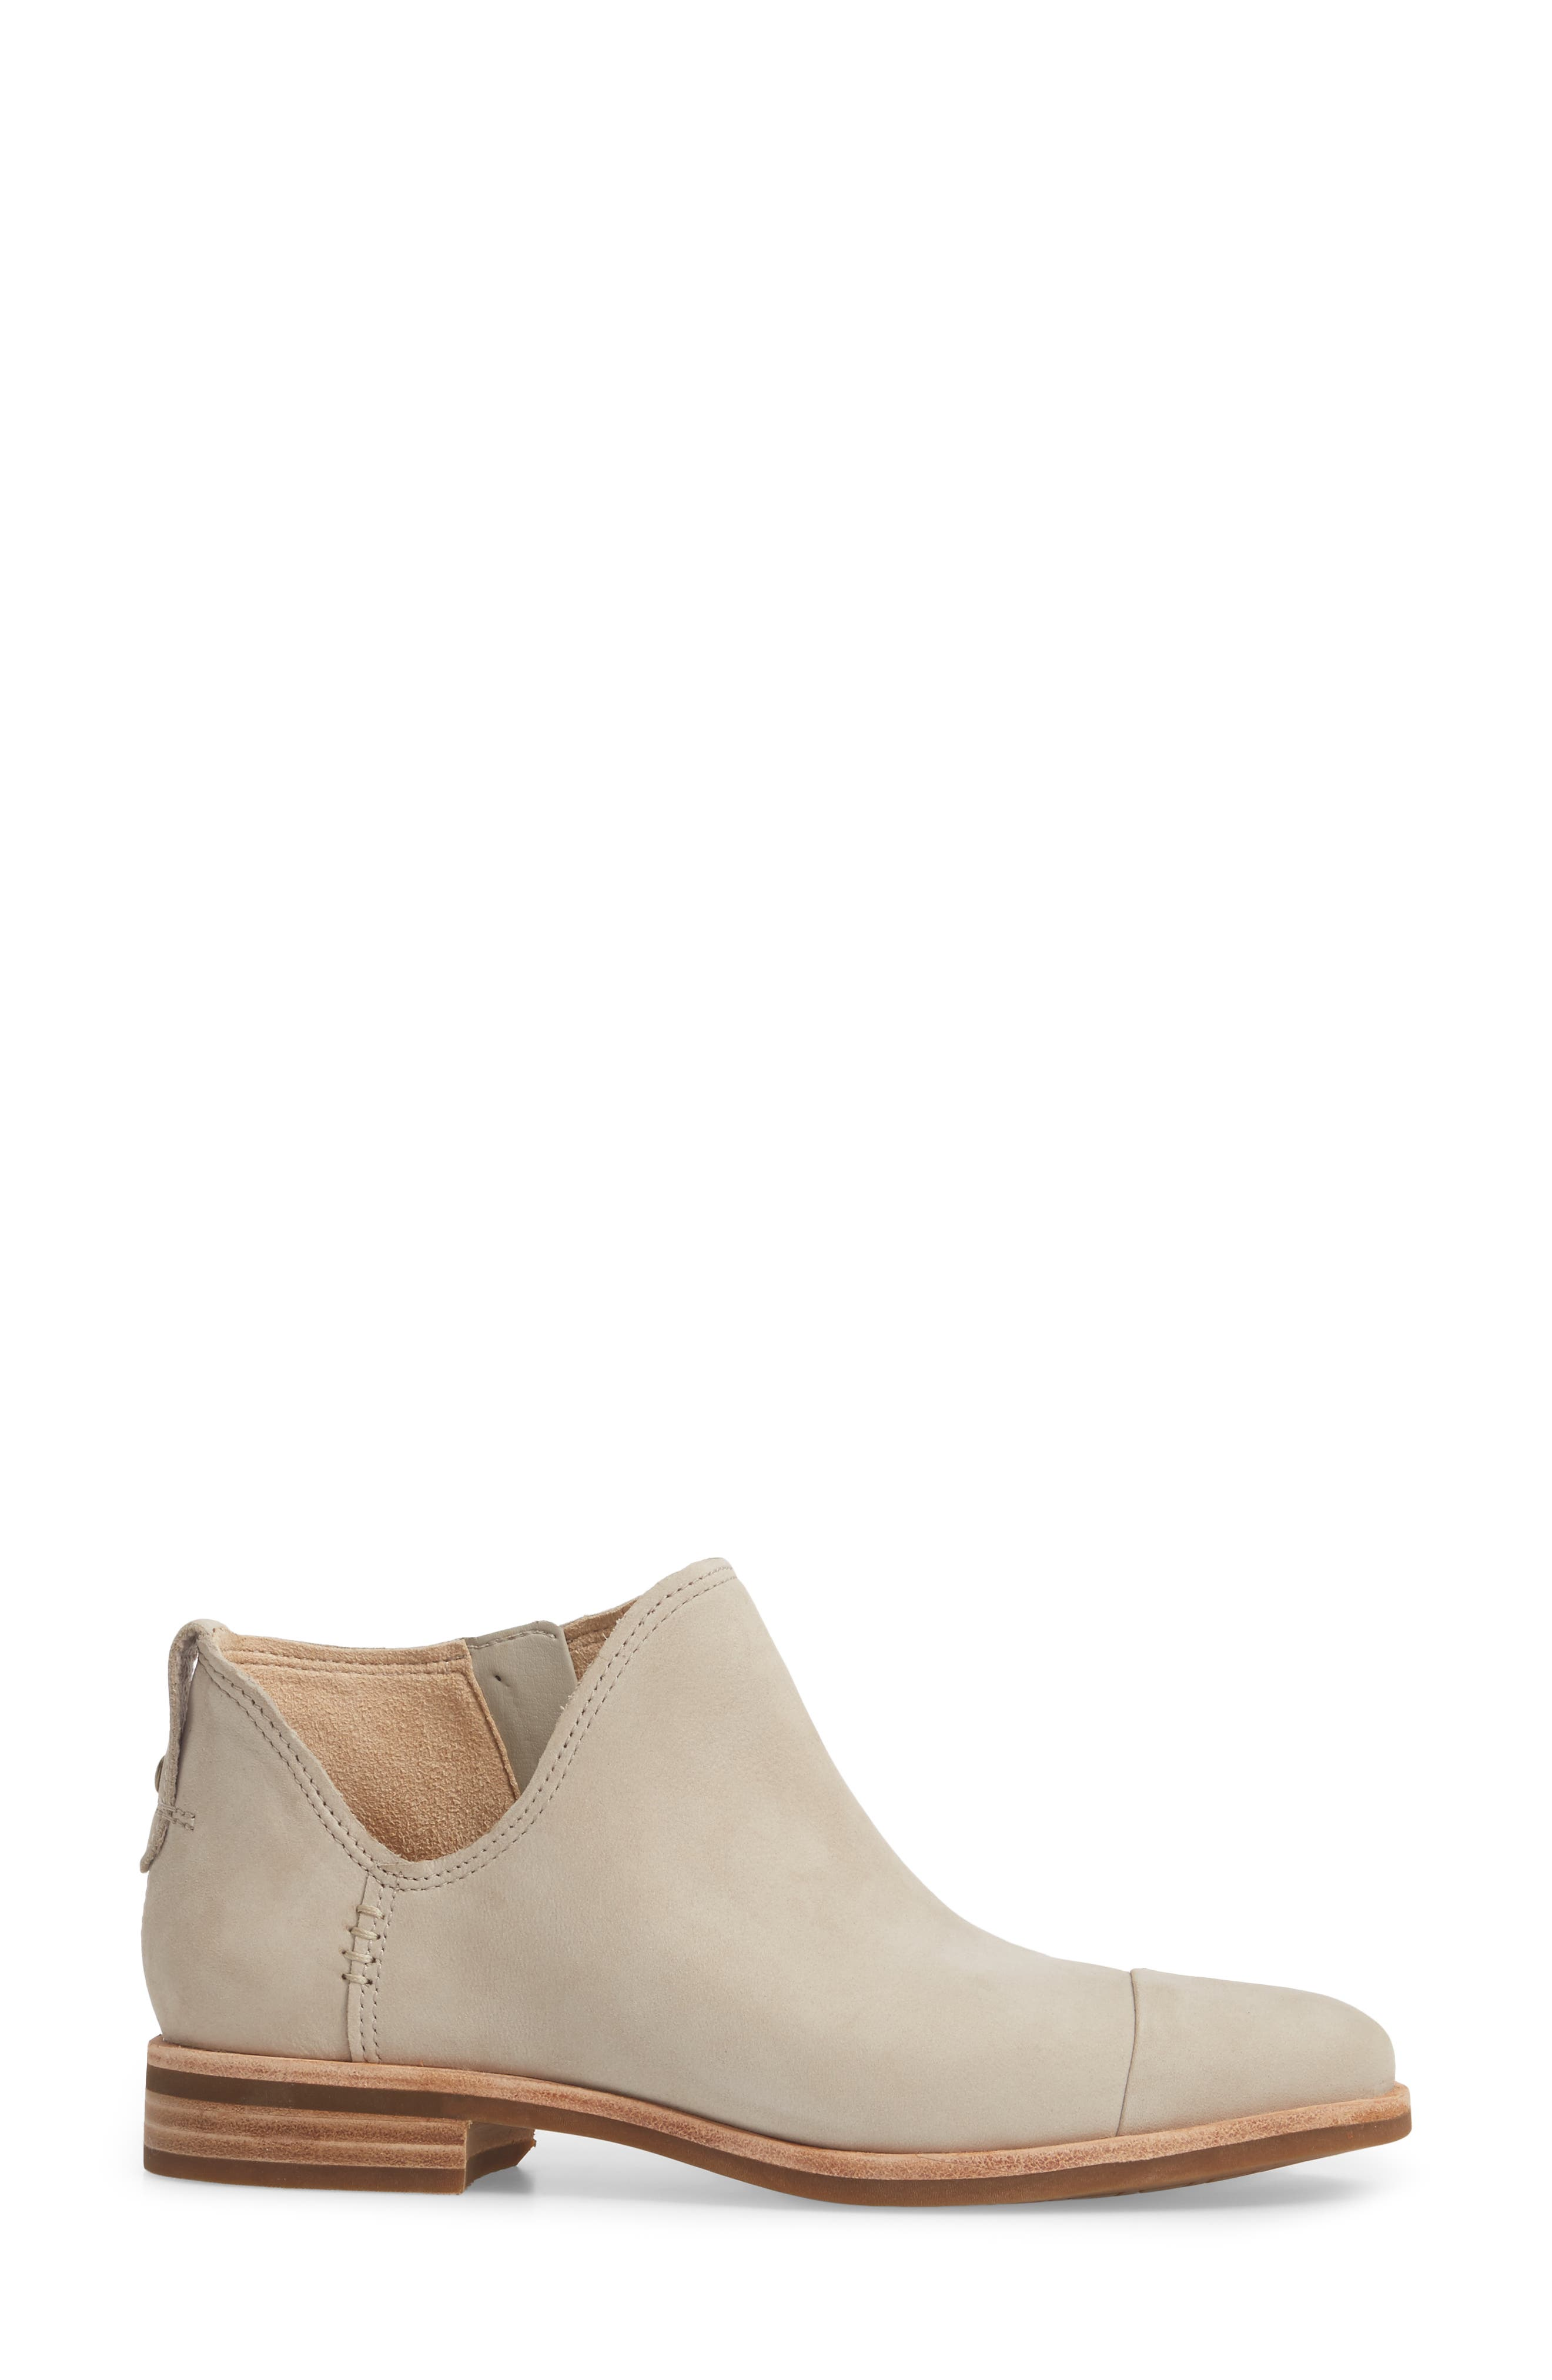 Somers Falls Short Ankle Bootie,                             Alternate thumbnail 3, color,                             Light Taupe Nubuck Leather